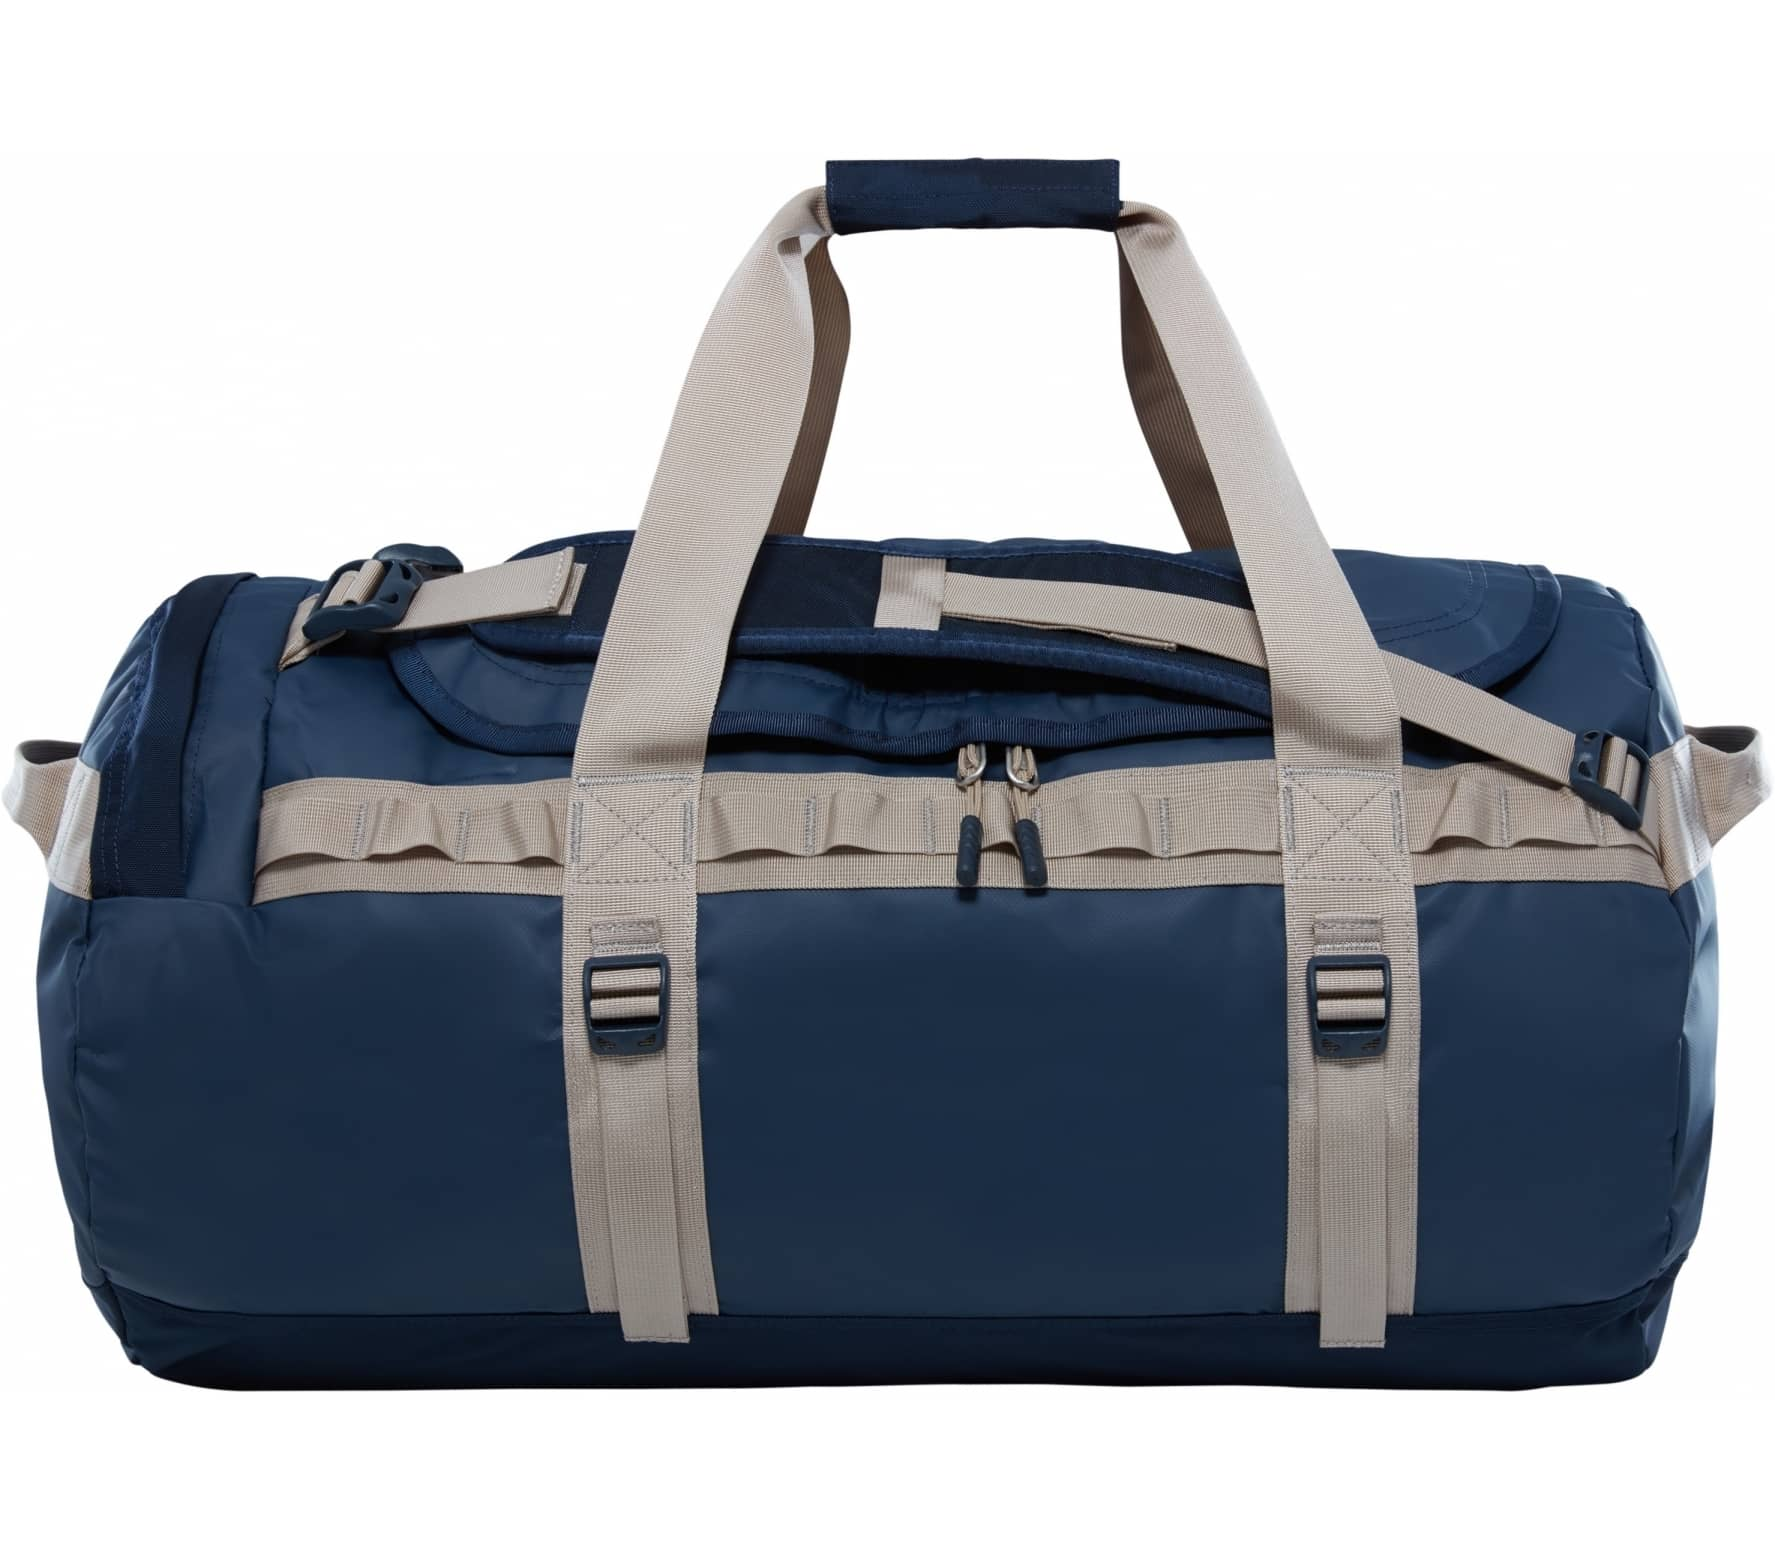 The North Face - Base Camp M duffel bag (dark blue/beige) thumbnail